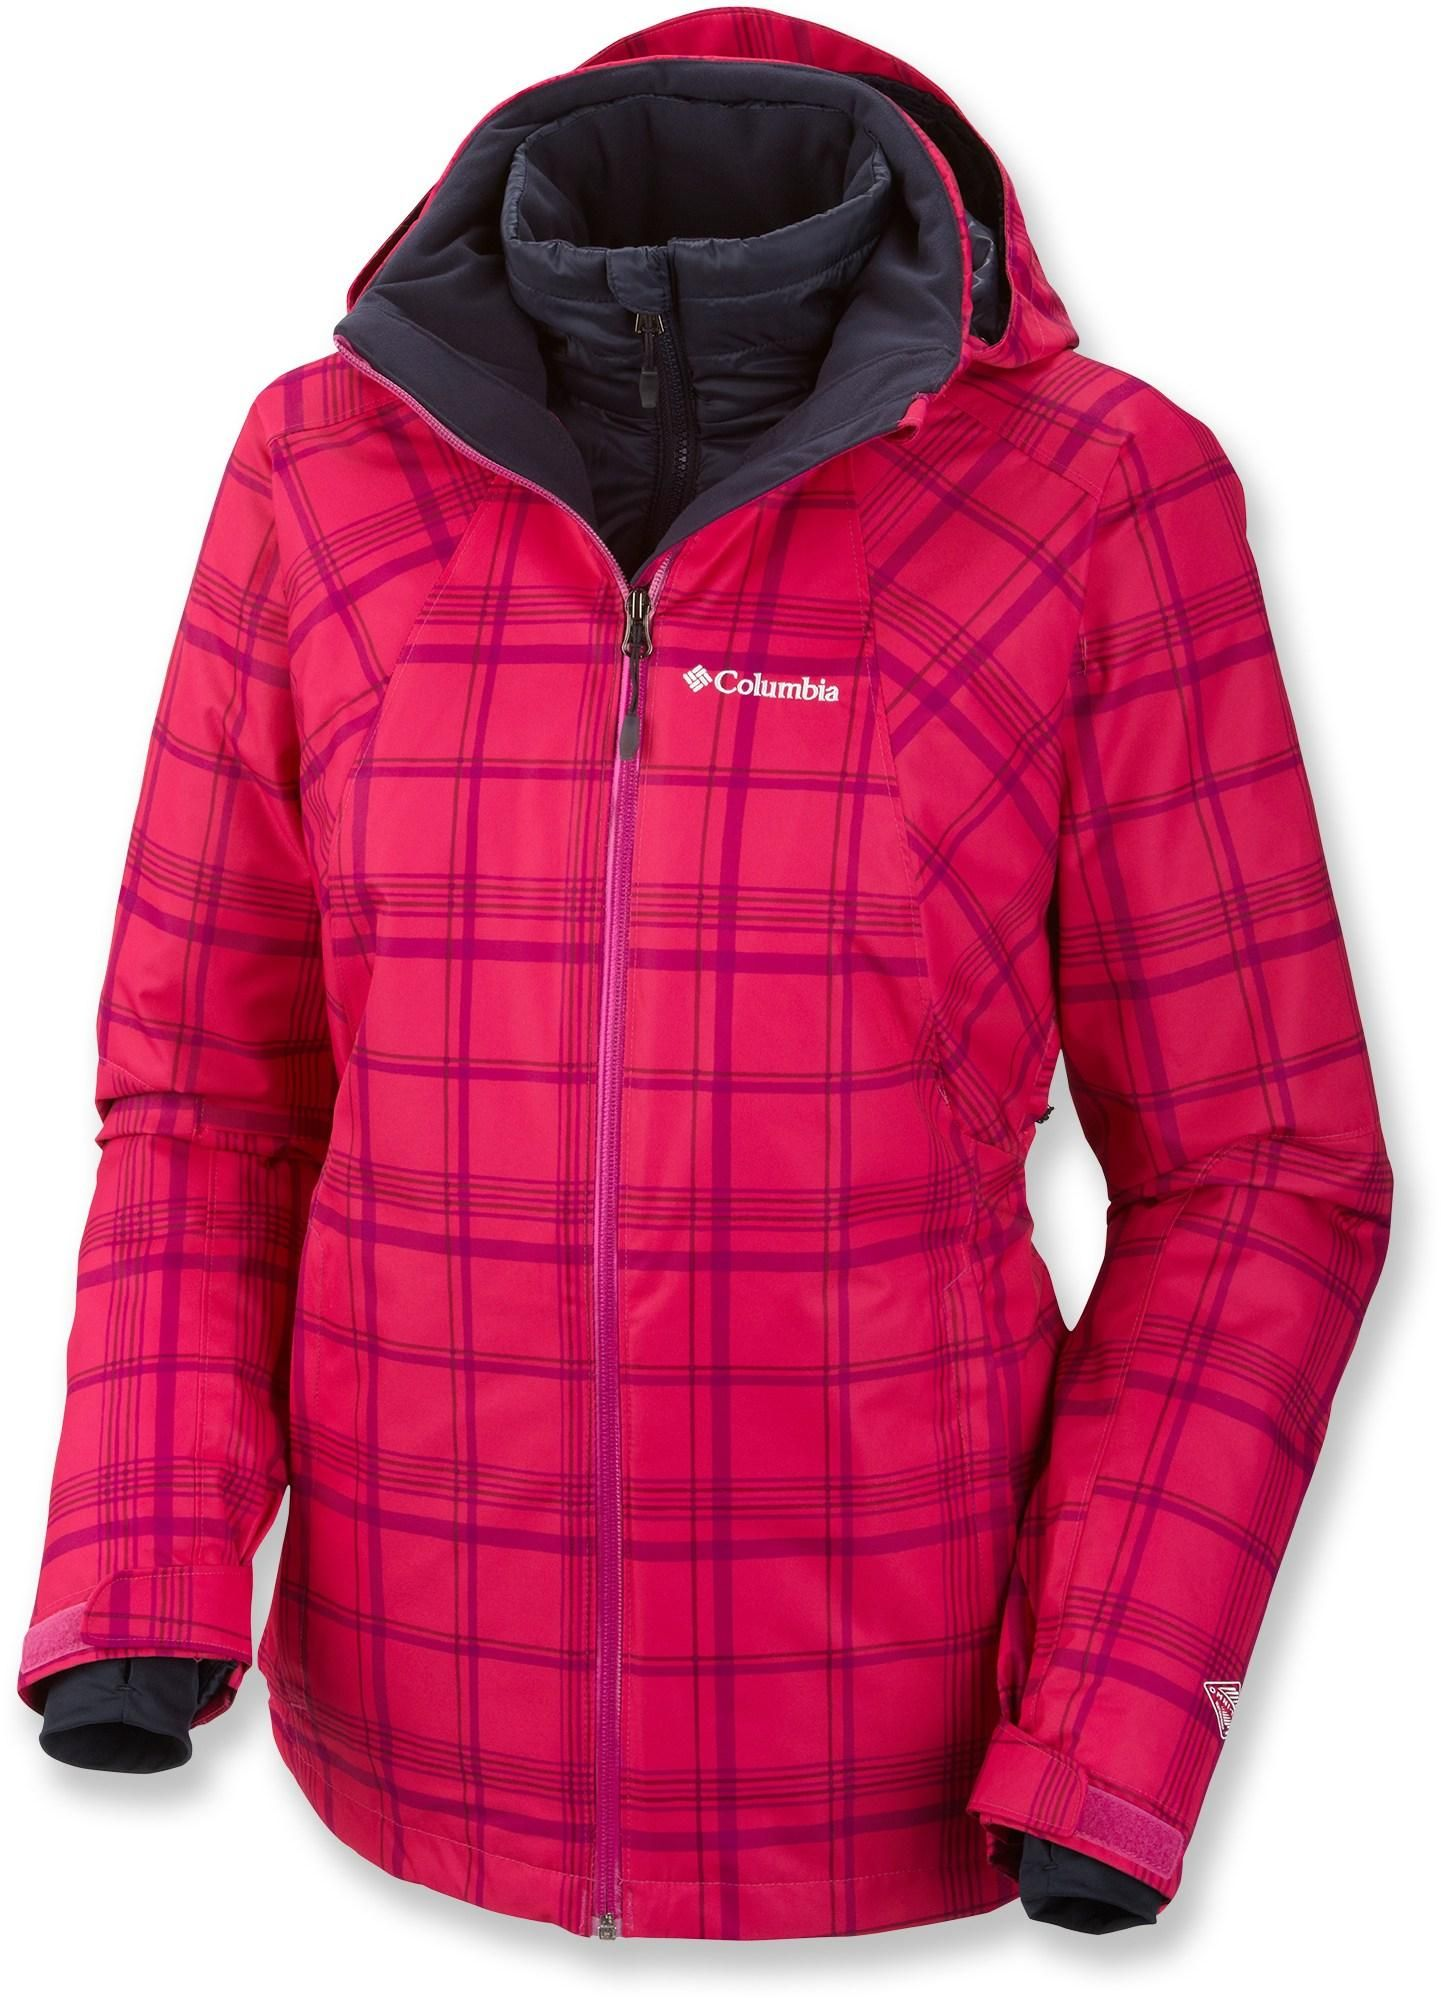 94766ec5fce Love the plaid! Columbia Whirlibird Interchange 3-in-1 Insulated Jacket -  Women s.